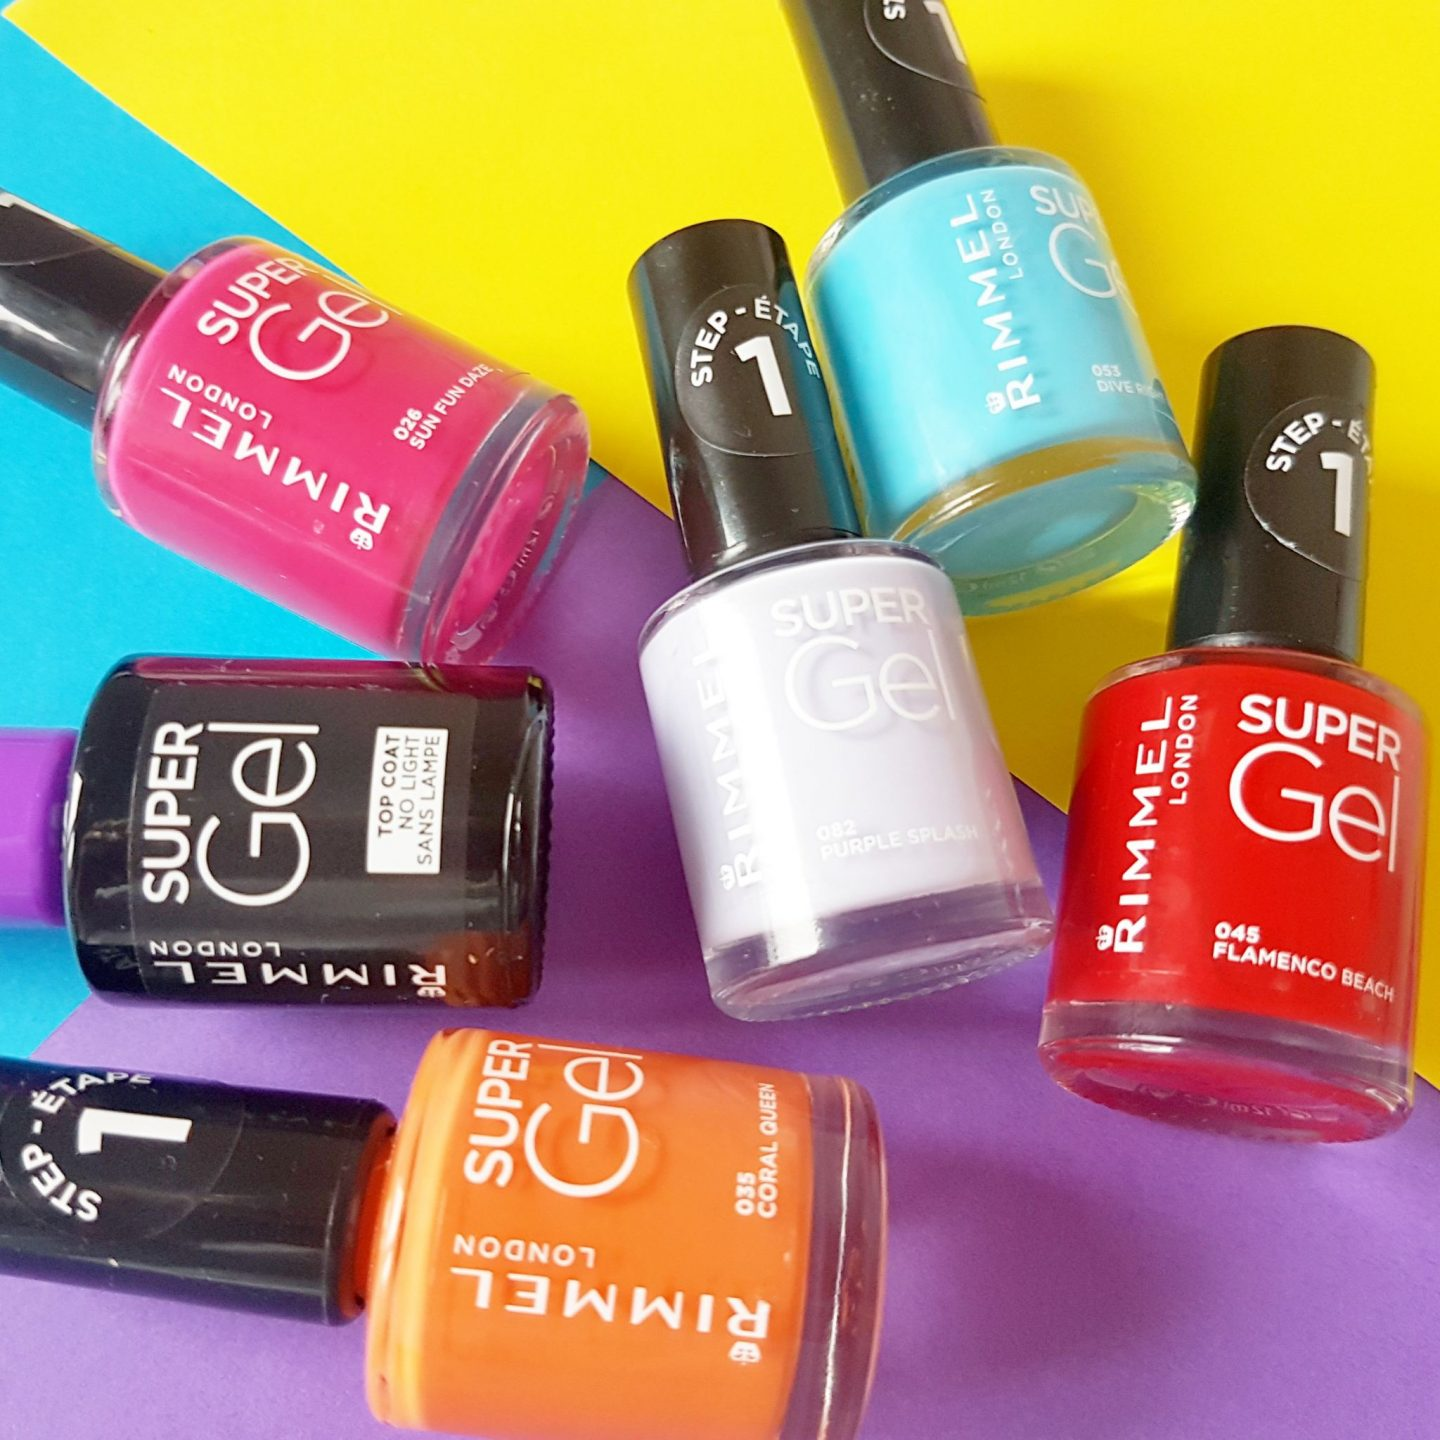 Rimmel London Super Gel Nail Polish Two Step System For Salon Style